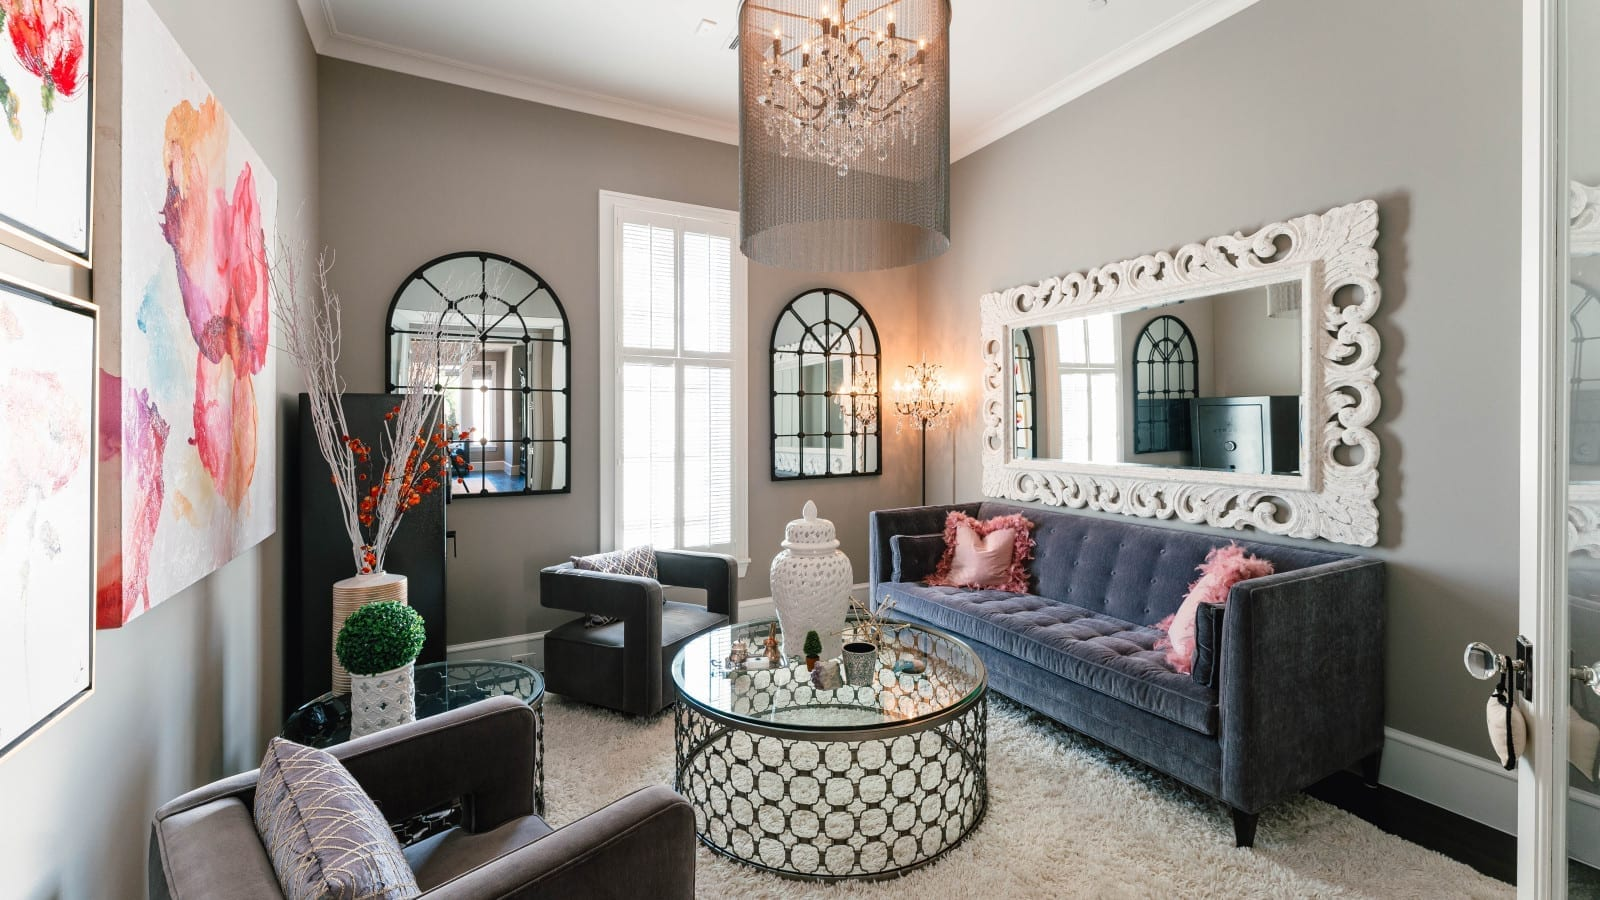 transitional modern style home designed by home builders in Dallas Texas 2 - Millennial Design + Build